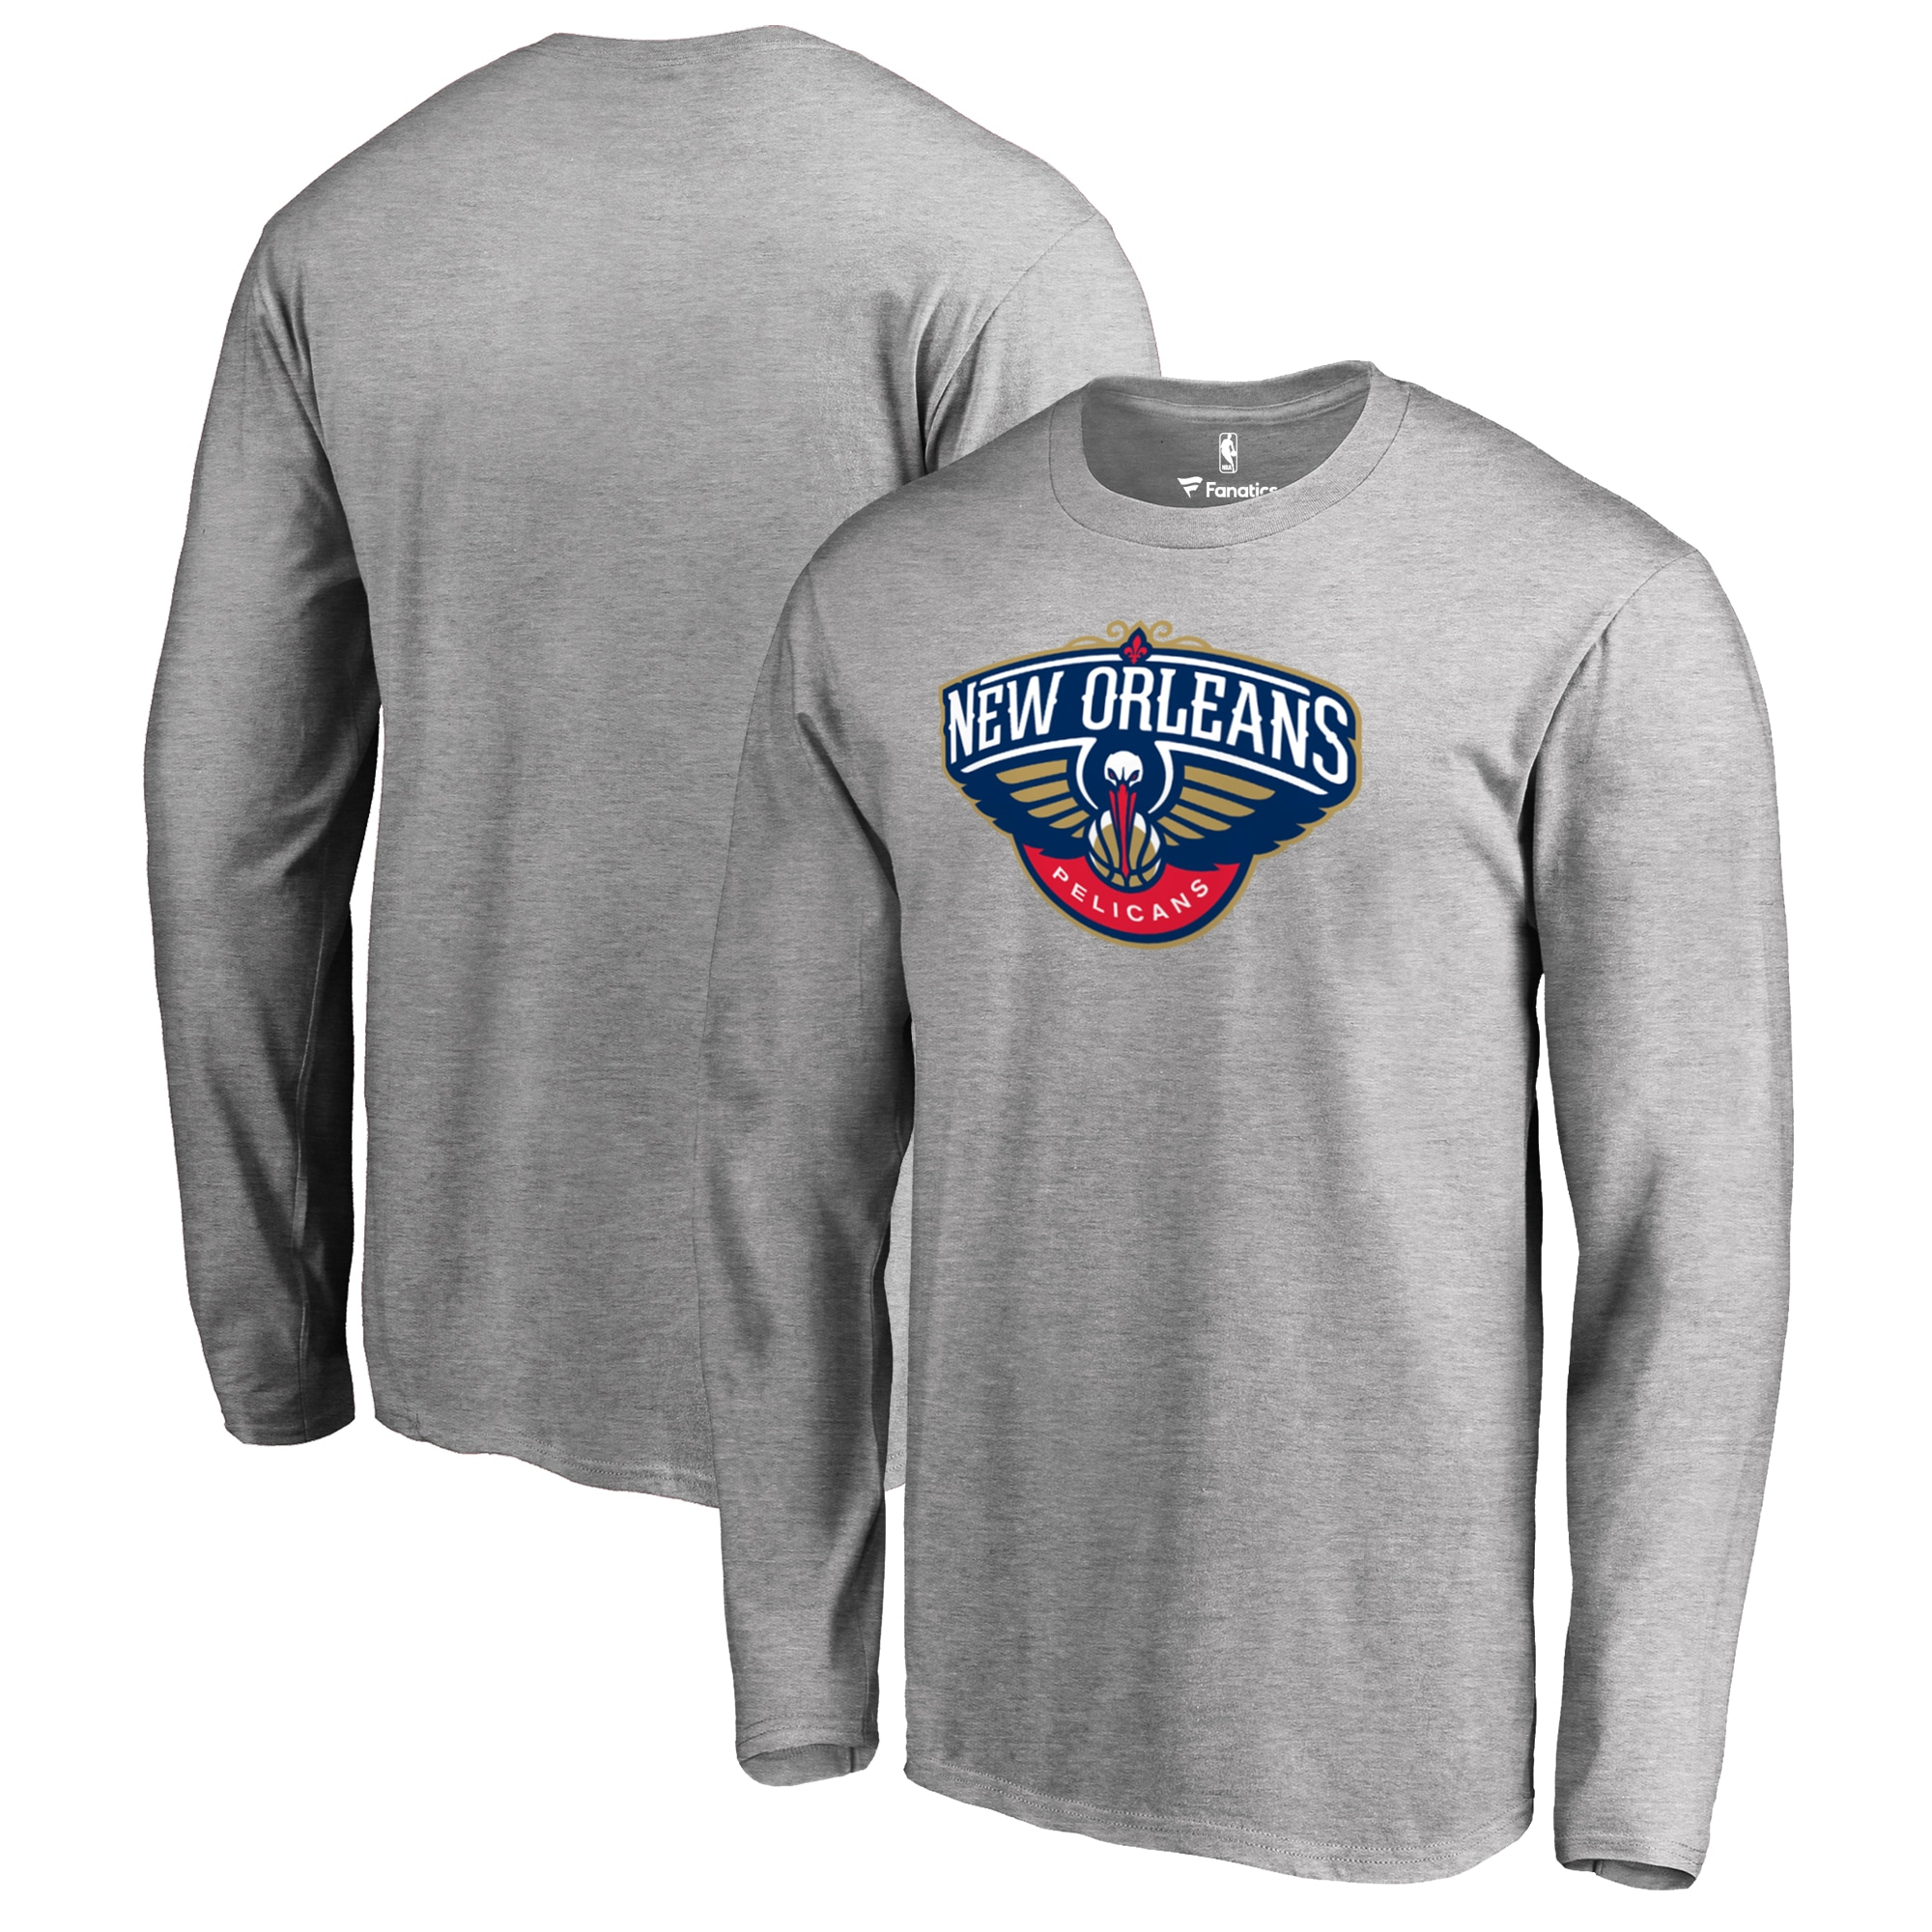 New Orleans Pelicans Fanatics Branded Primary Logo Long Sleeve T-Shirt - Heather Gray